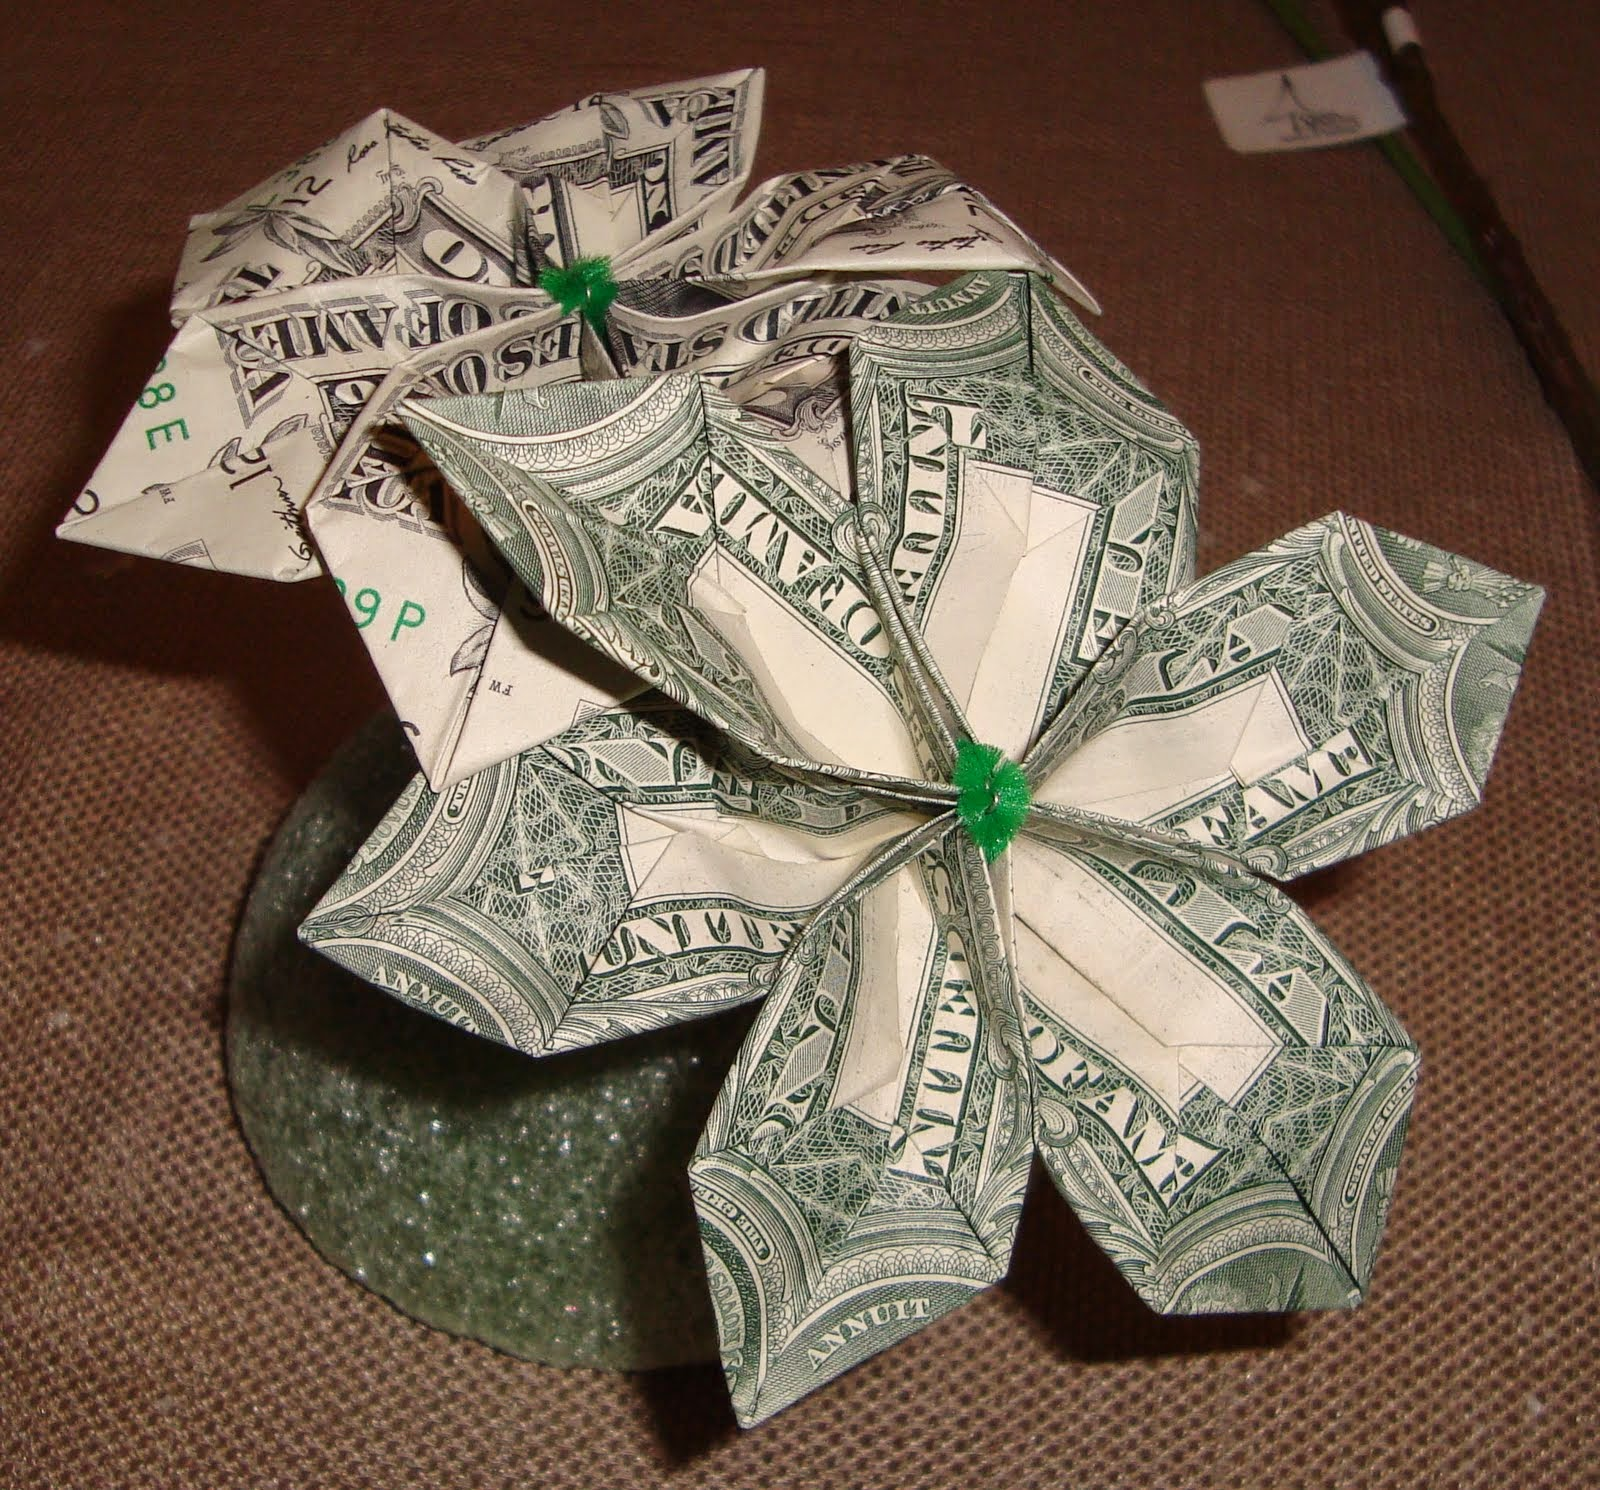 How to make a money origami flower bliss tree using just 3 money bills you can build up this modelyou can still fold this flower with piece of paper if you dont like to use money bills mightylinksfo